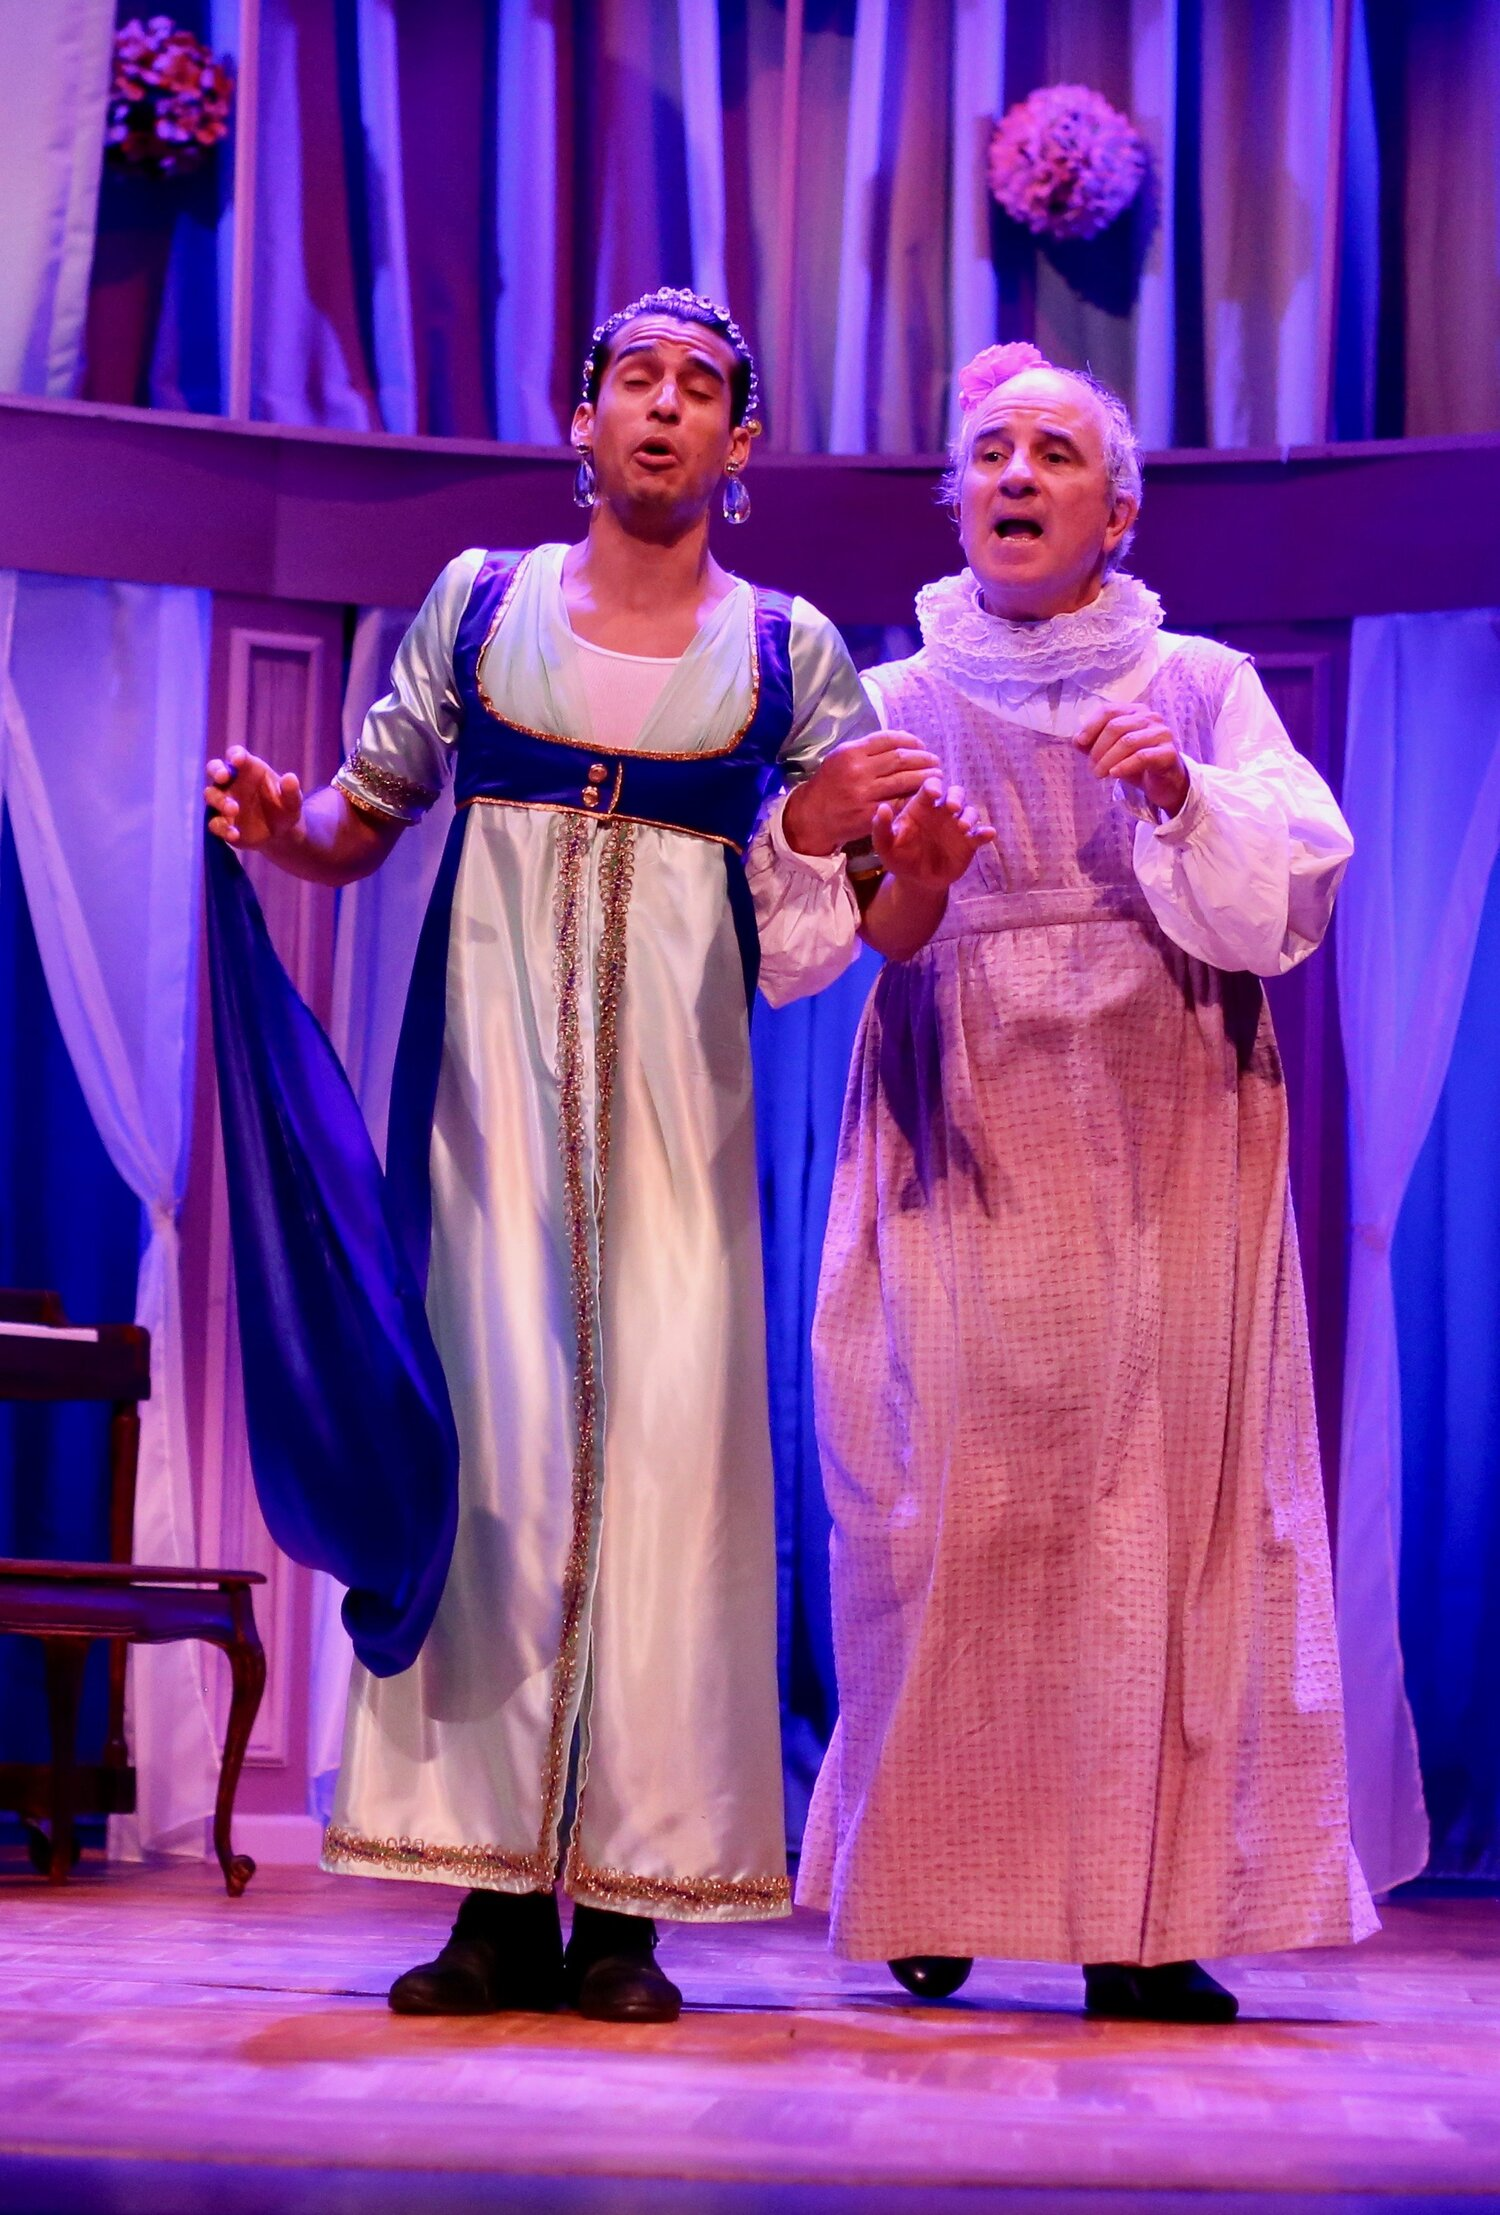 Caroline Bingley's Diadem- Pride and Prejudice- Creede Repertory Theatre 2019  Costume Design by Amy Sutton. All designs by the seasonal staff of CRT. Photos courtesy of Jhon Gary Brown.